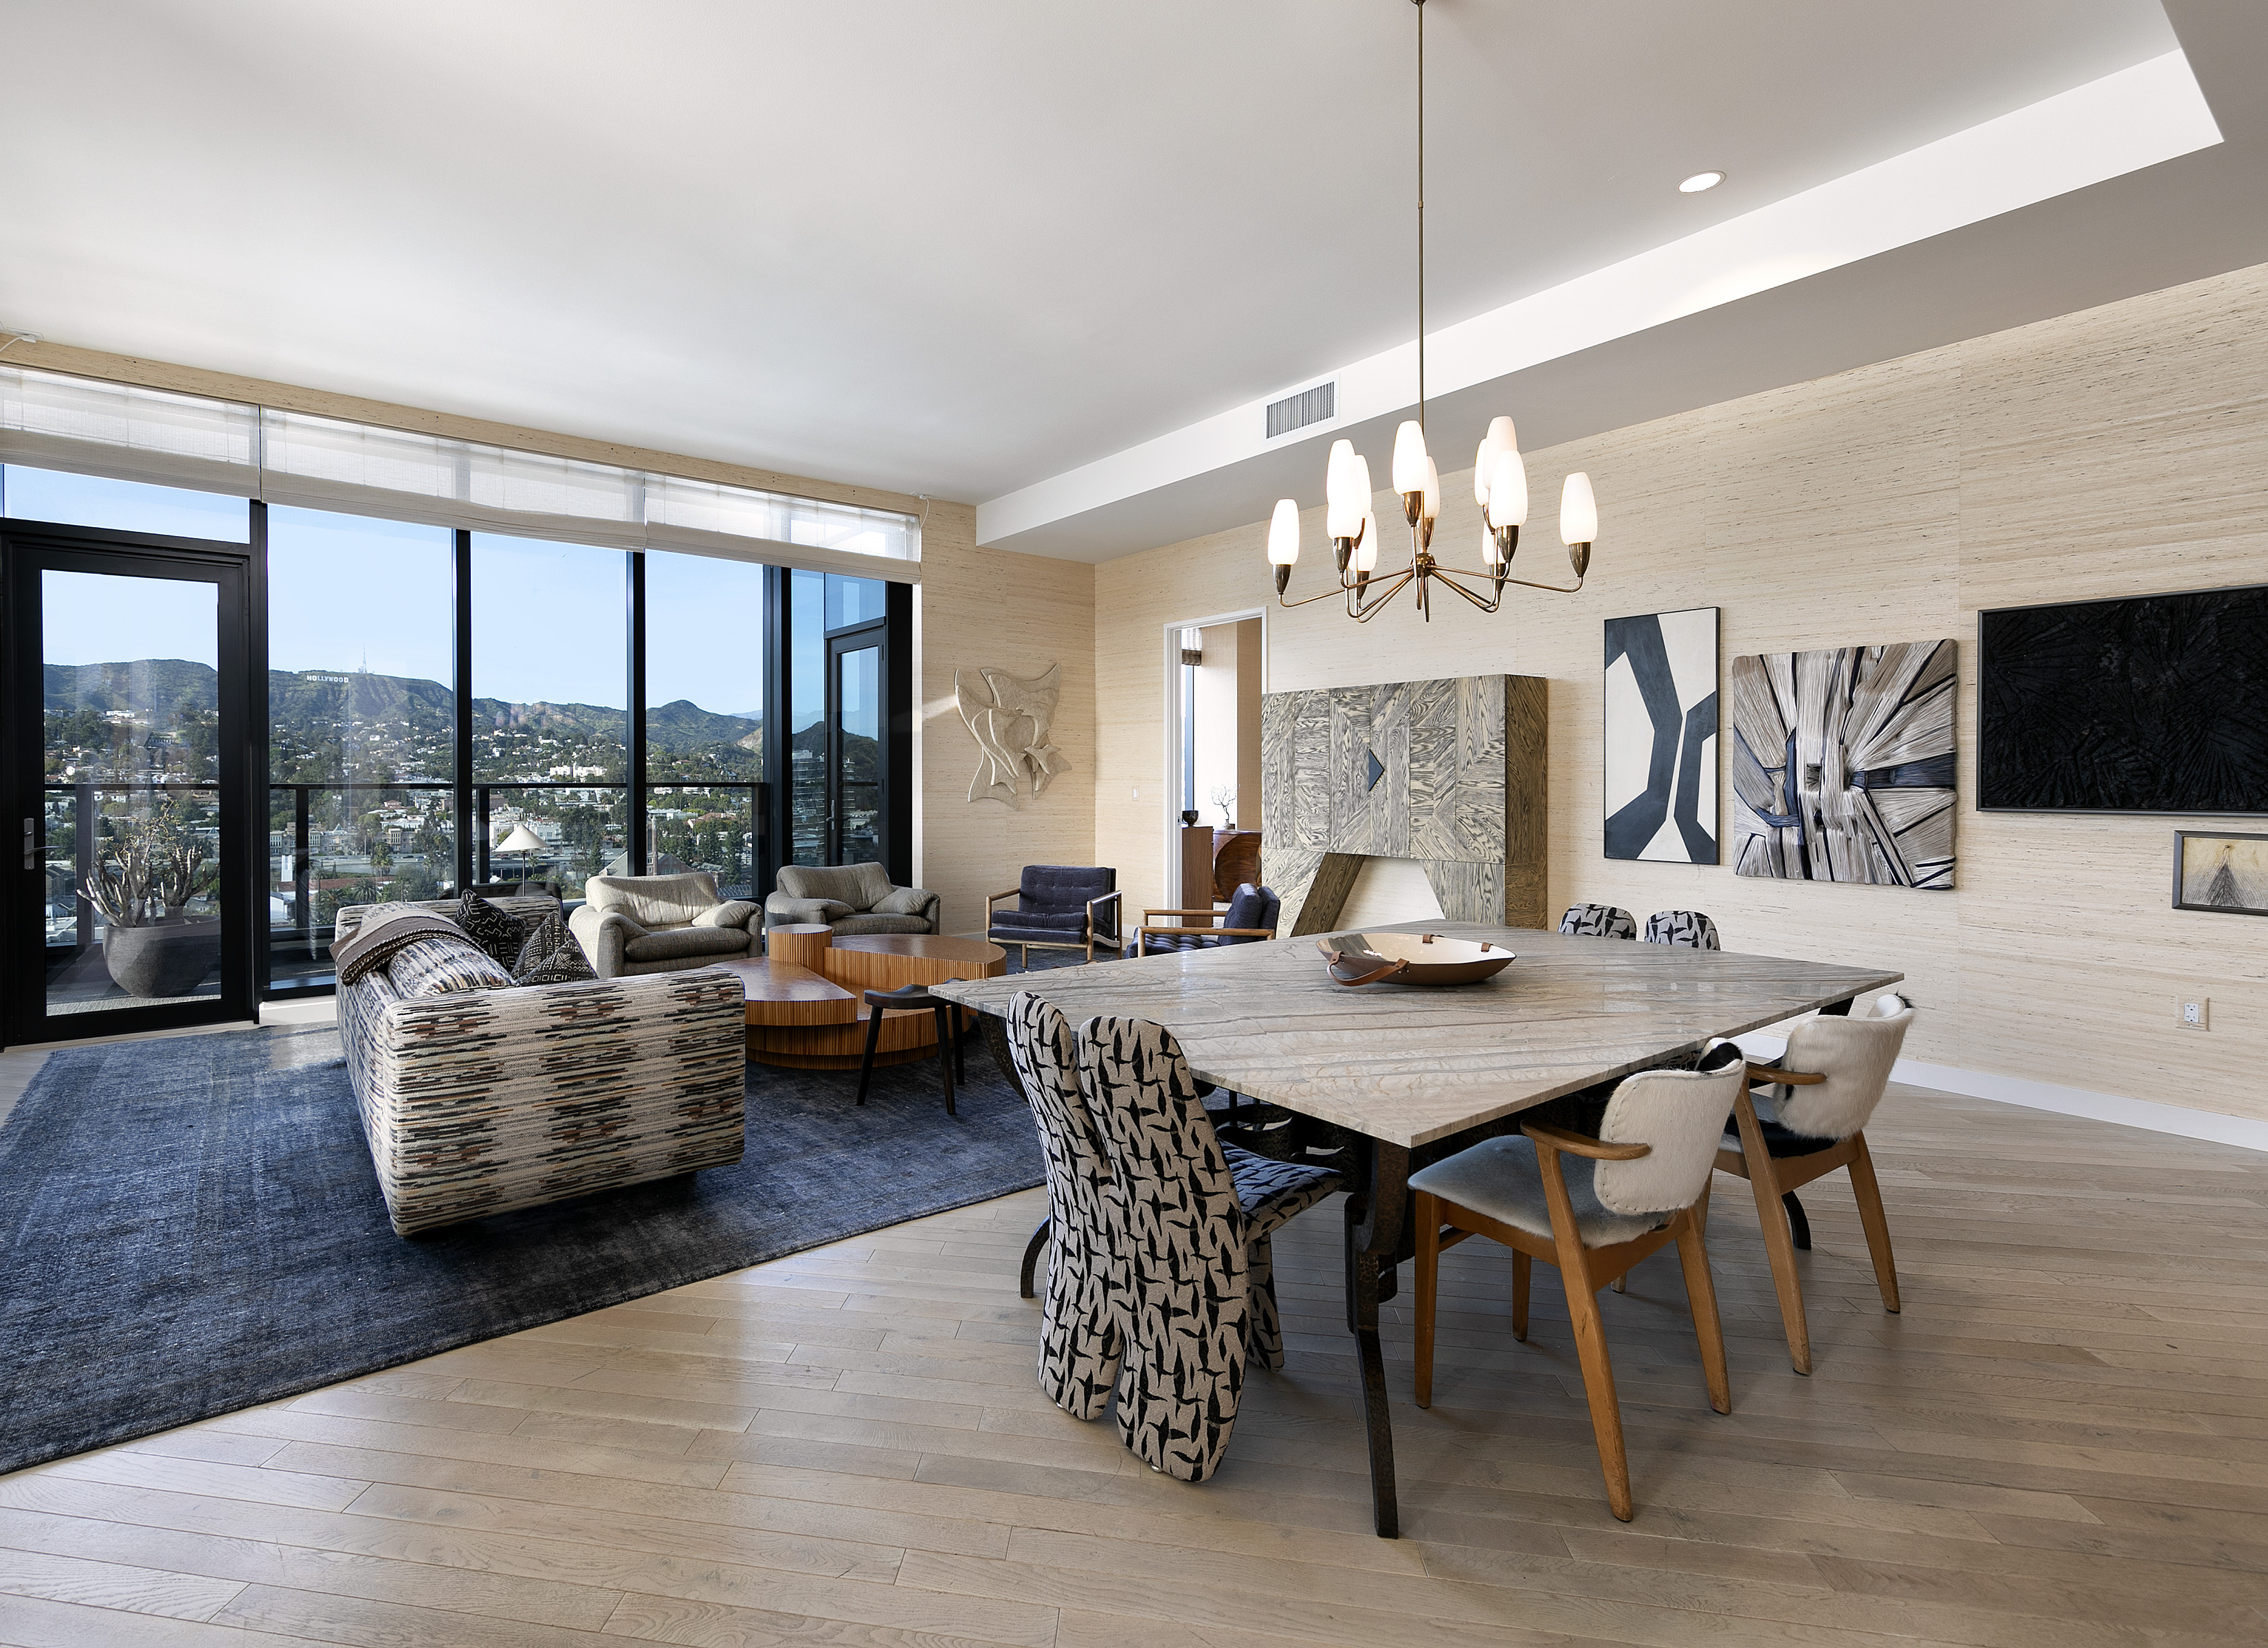 Hollywood: Where a penthouse rents for $30K per month